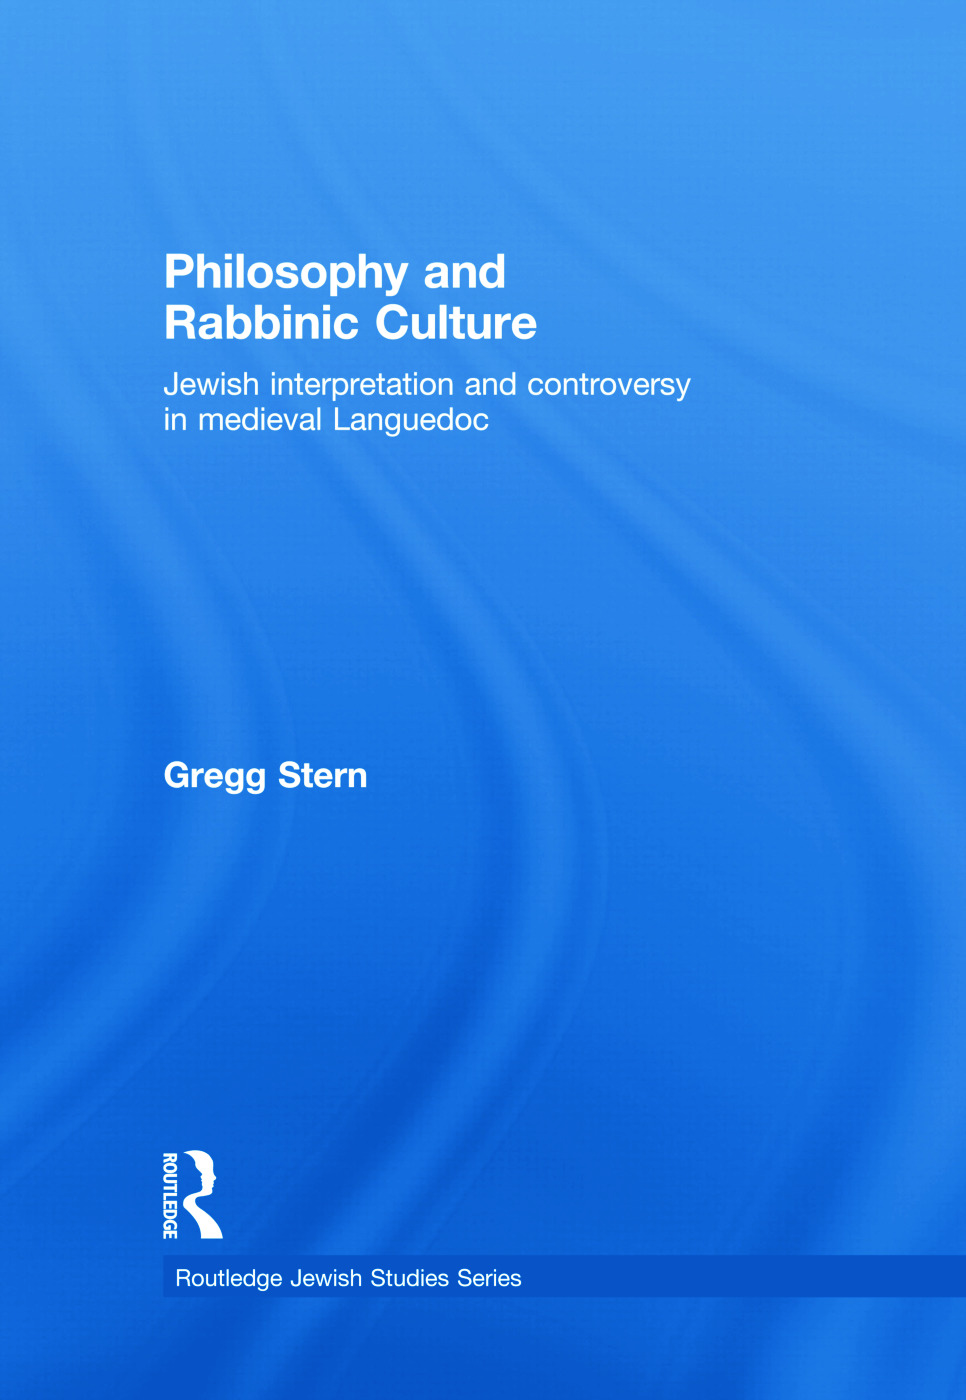 Philosophy and Rabbinic Culture: Jewish Interpretation and Controversy in Medieval Languedoc book cover